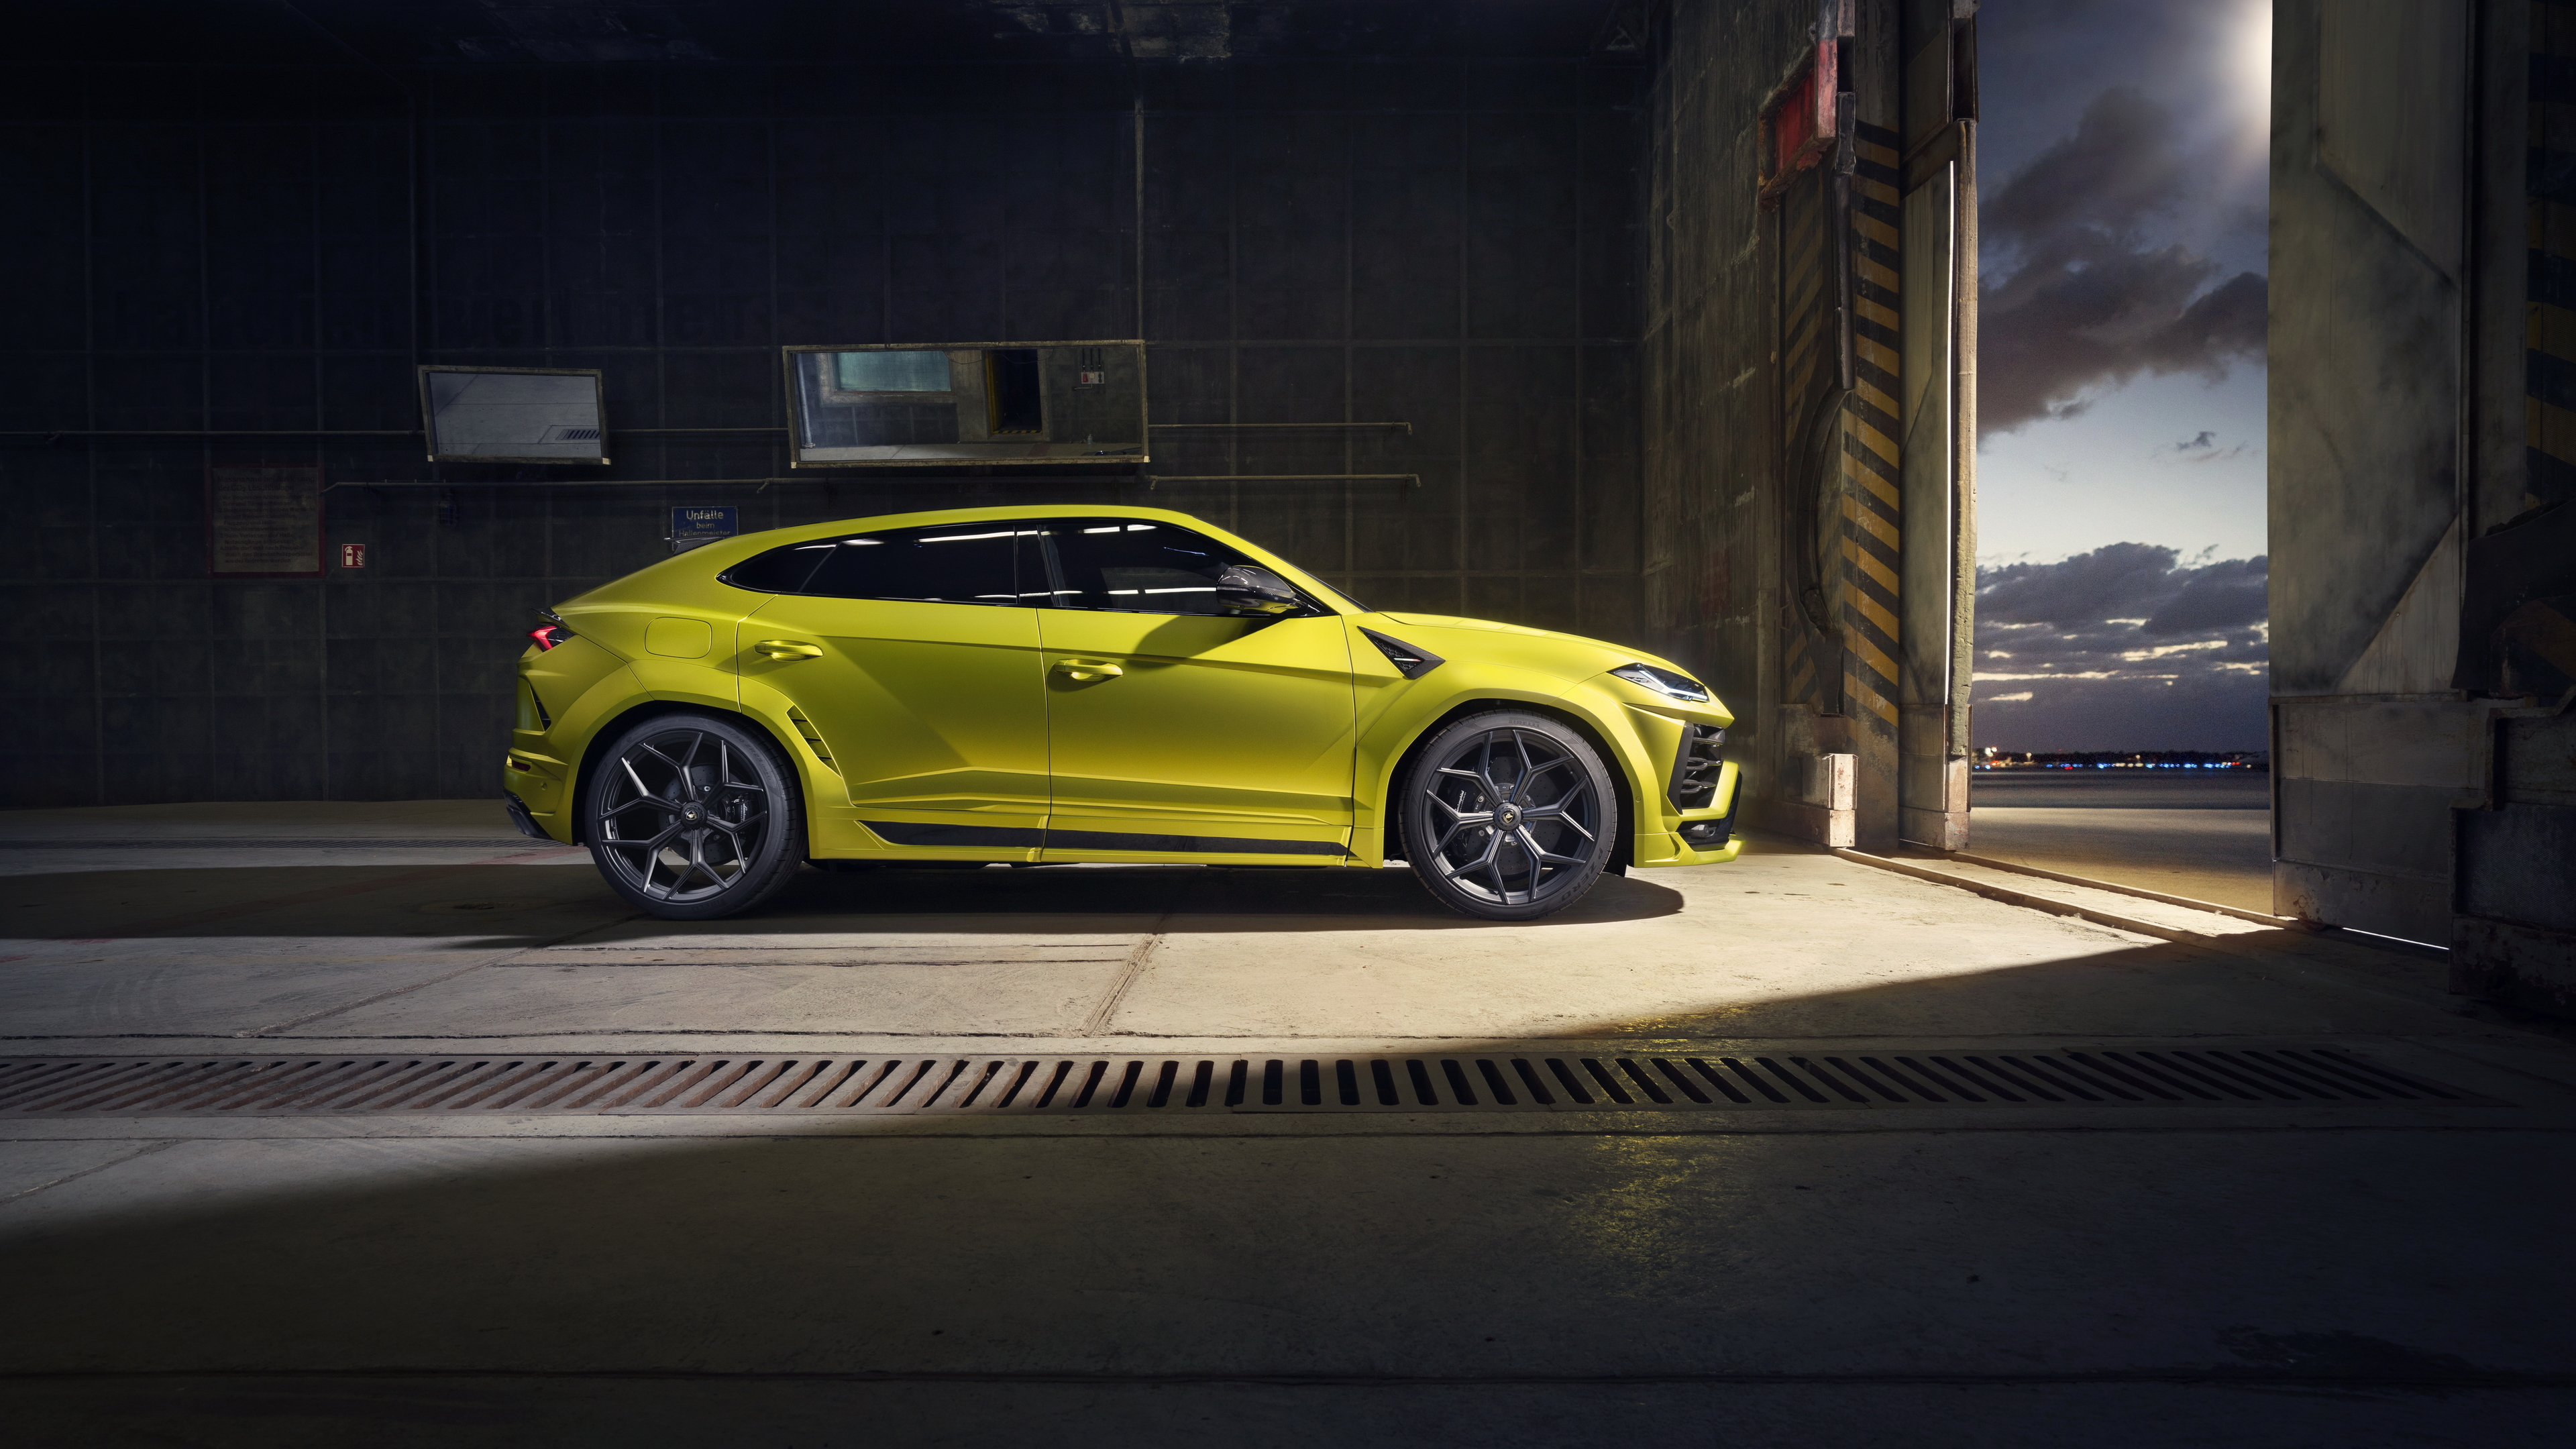 novitec lamborghini urus esteso 2019 side view 1569189741 - Novitec Lamborghini Urus Esteso 2019 Side View - suv wallpapers, lamborghini wallpapers, lamborghini urus wallpapers, hd-wallpapers, cars wallpapers, 5k wallpapers, 4k-wallpapers, 2019 cars wallpapers